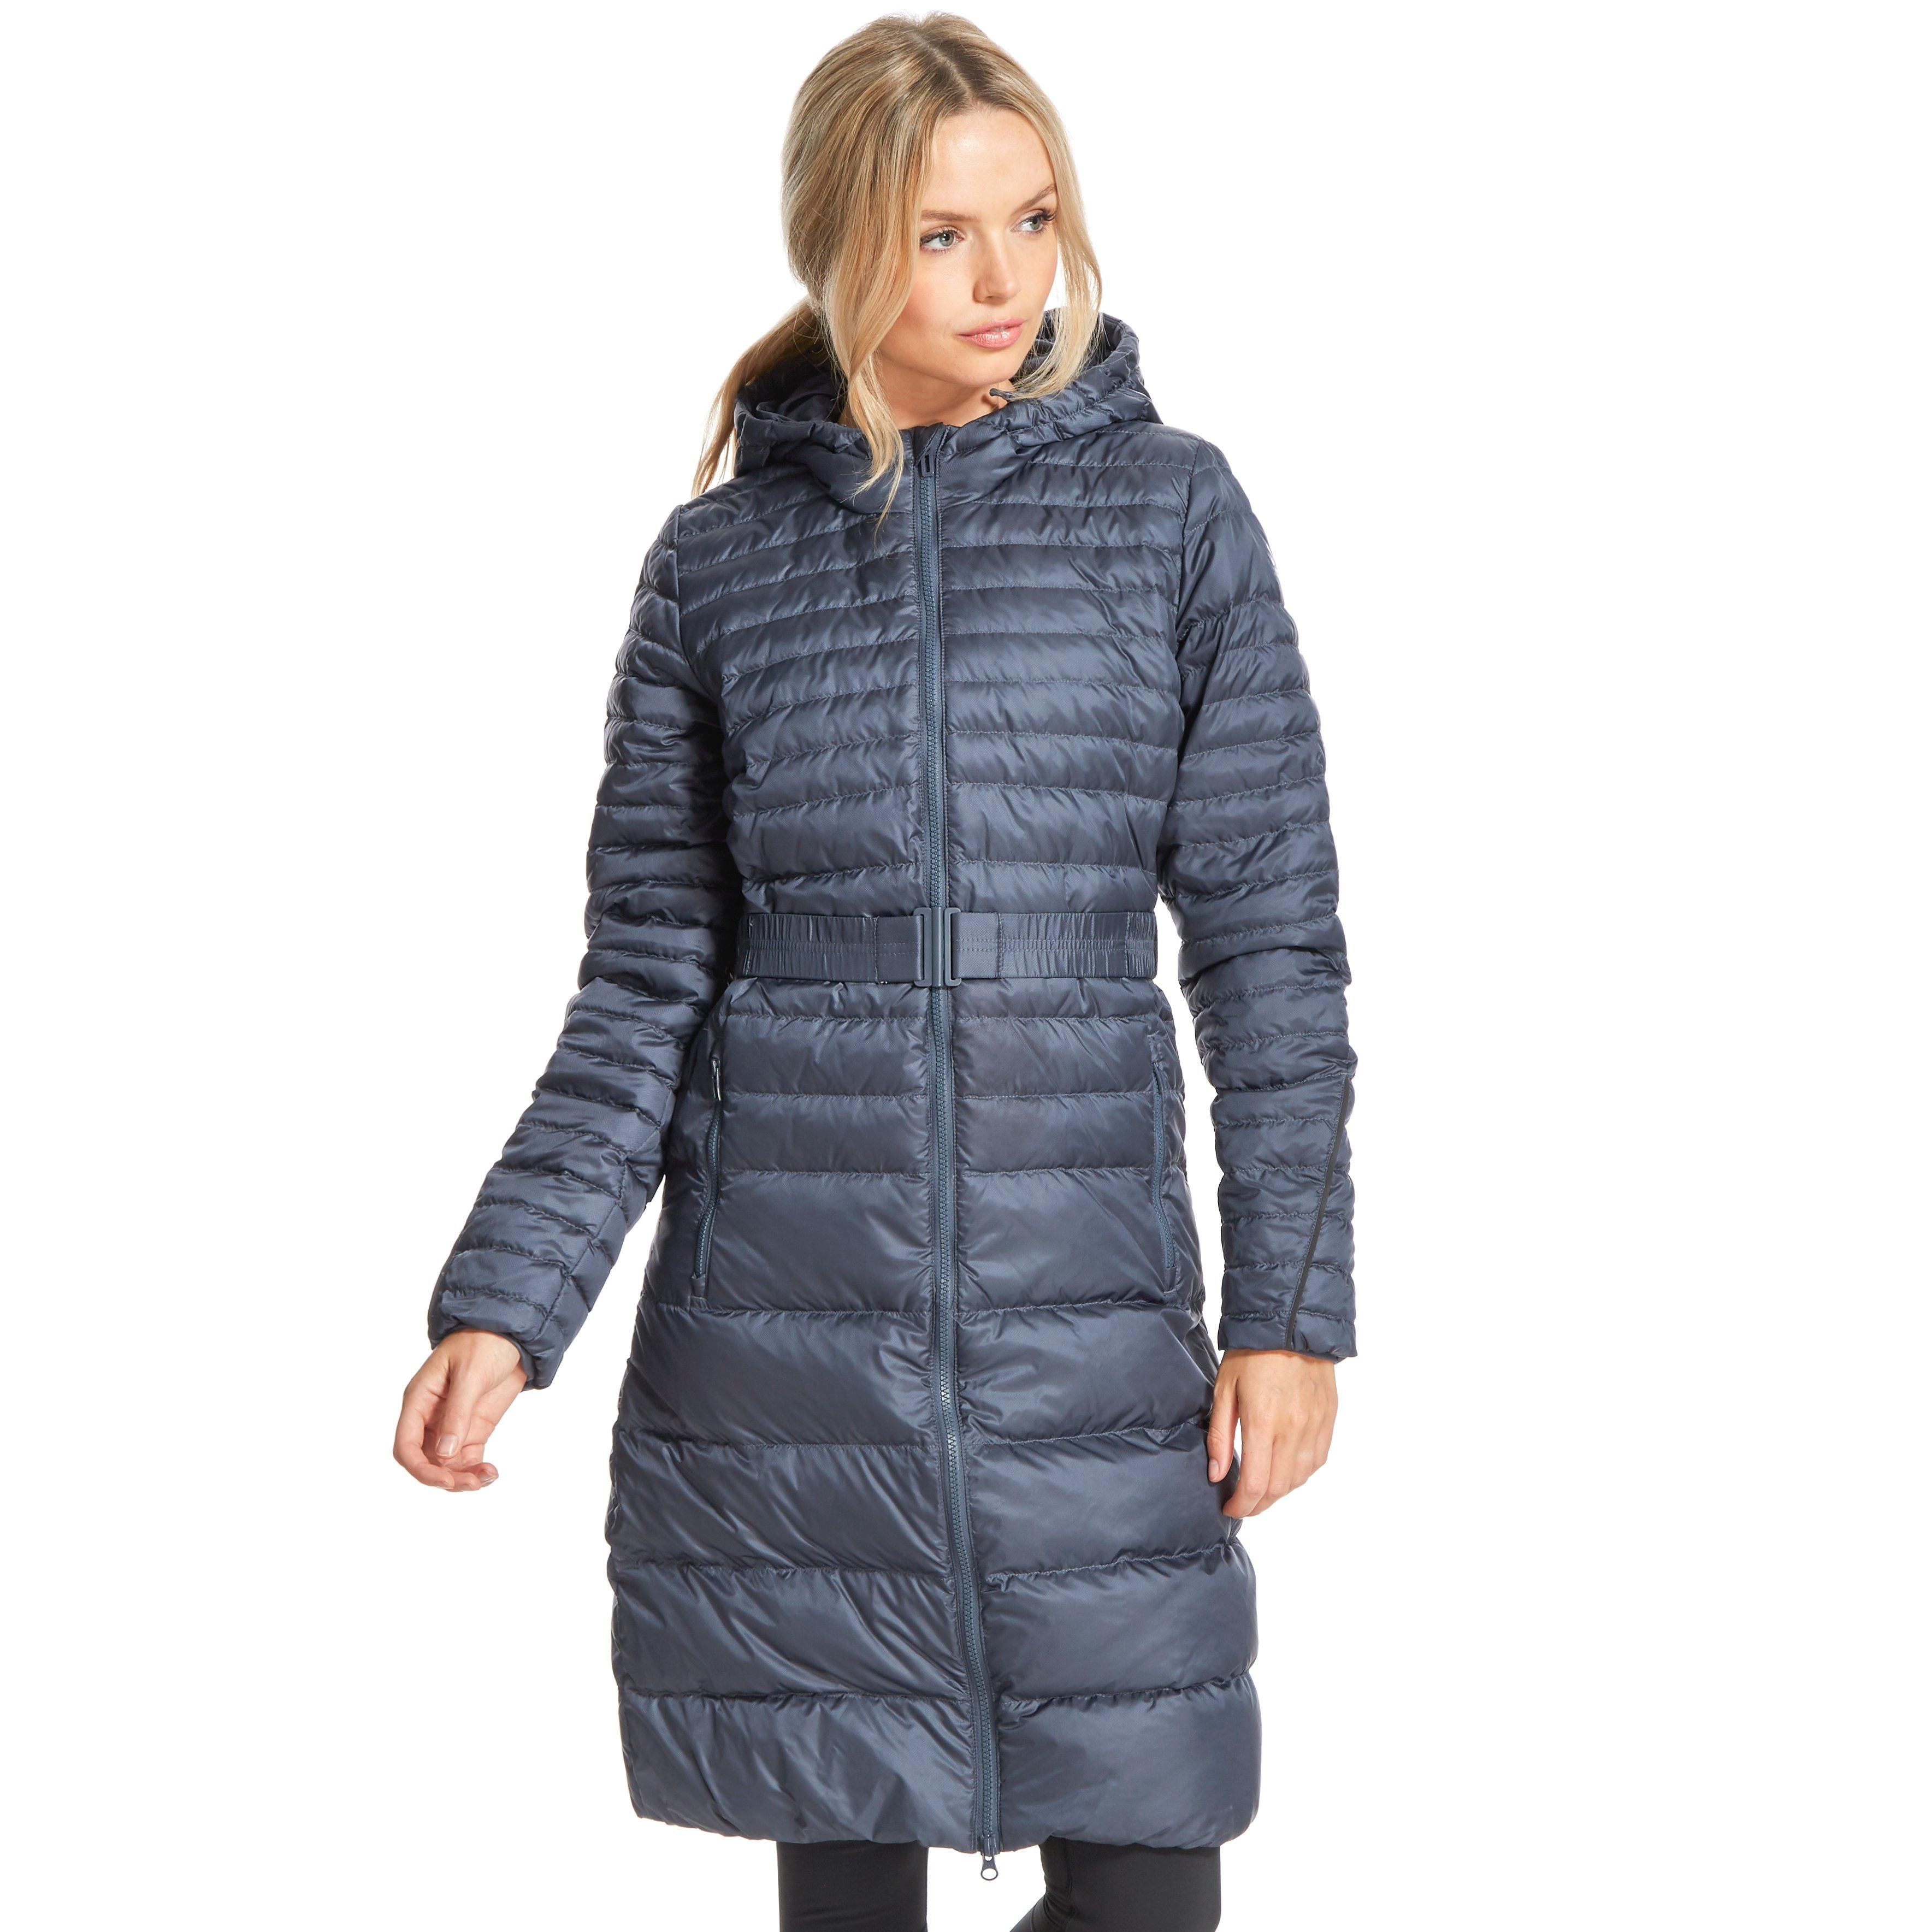 Incredibly warm and flattering, the adidas Women's Timeless Down ...